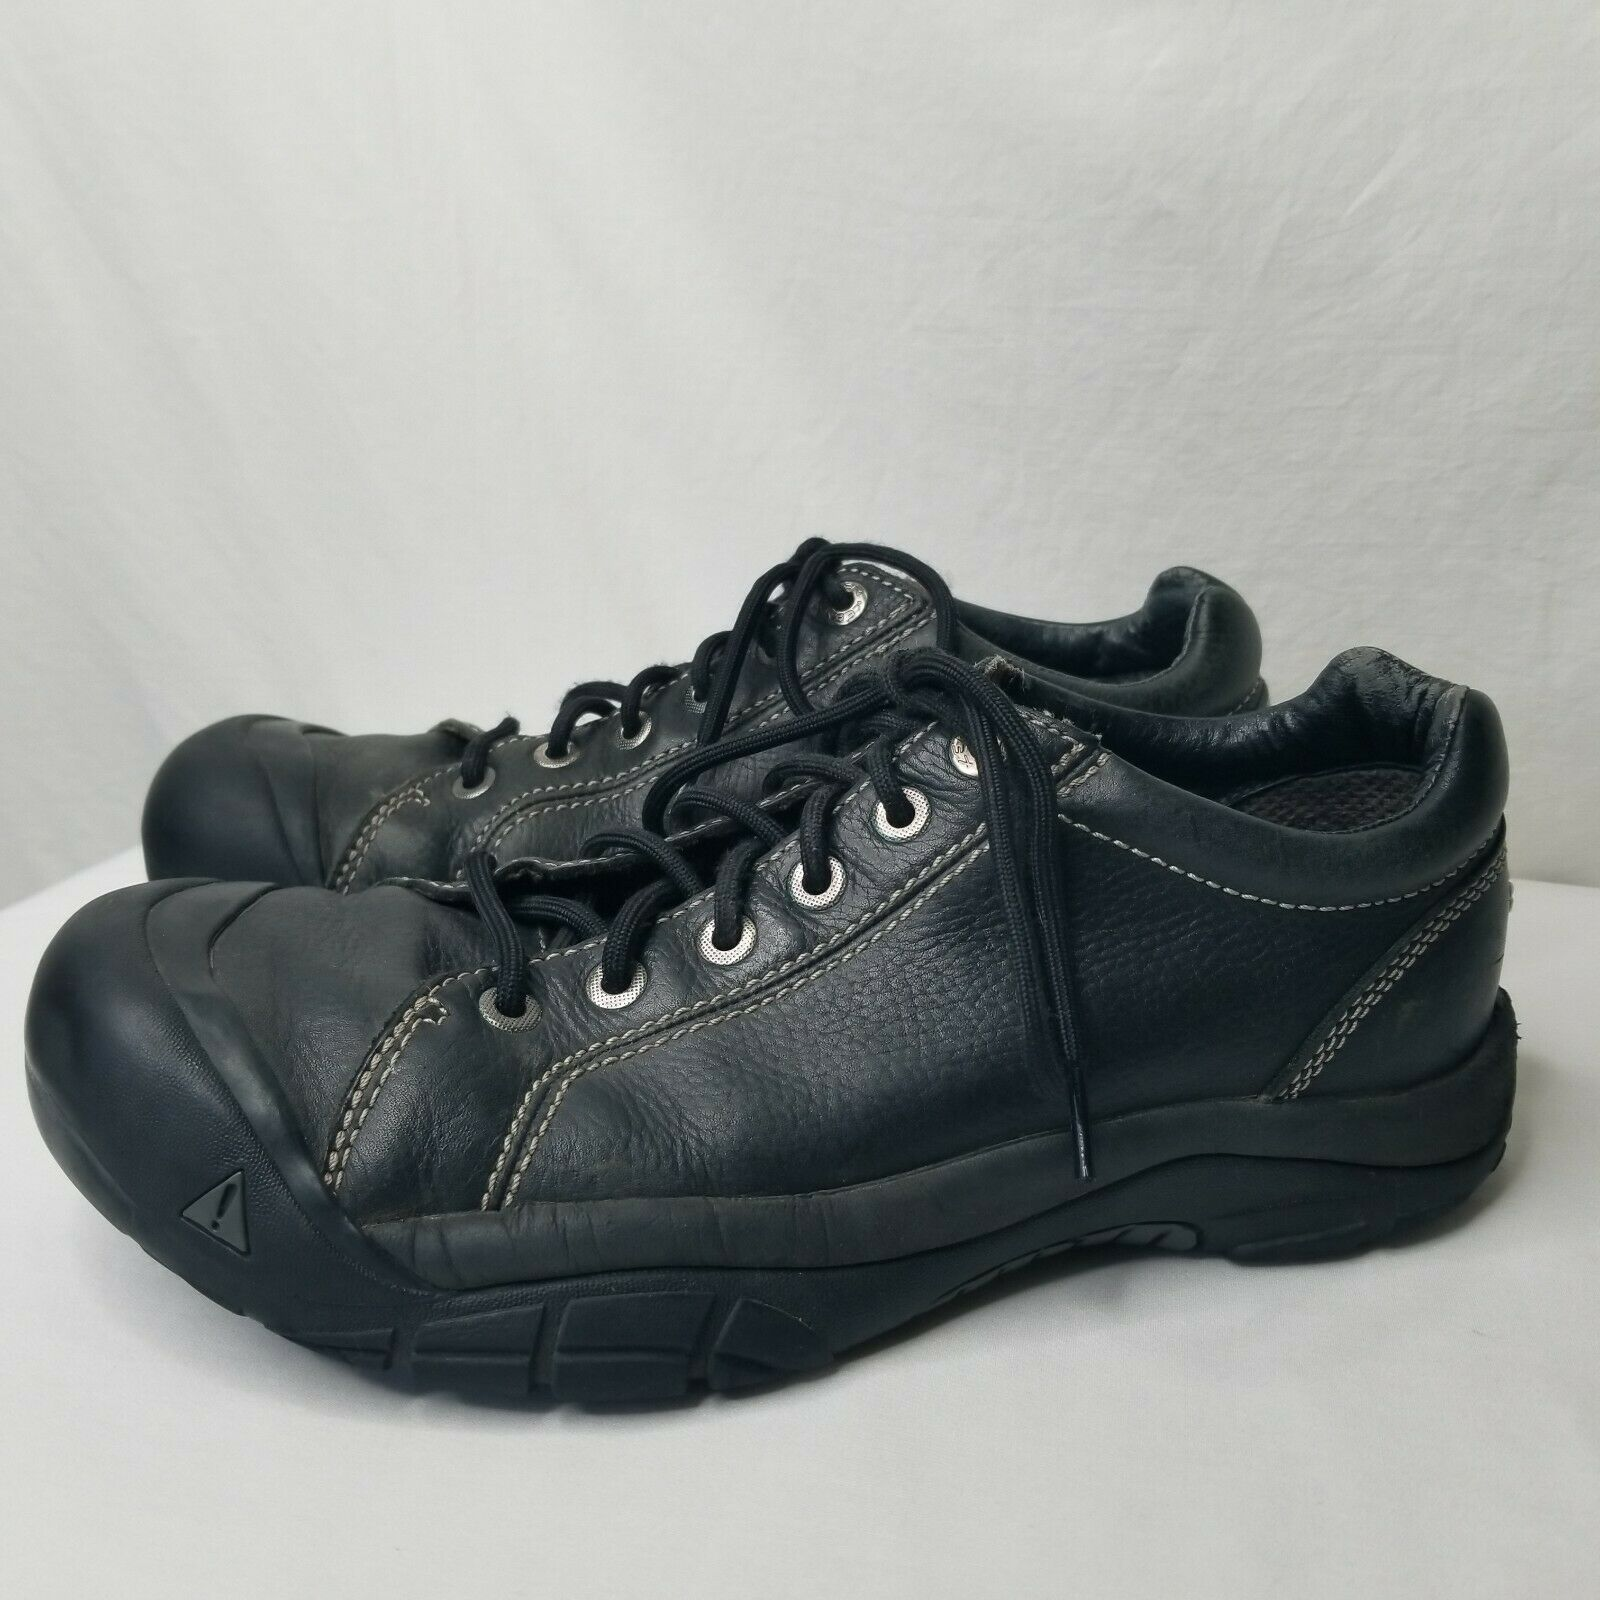 Keen Austin Black Leather shoes US Size 11 Casual Oxford Walking Lace Up EU 44.5